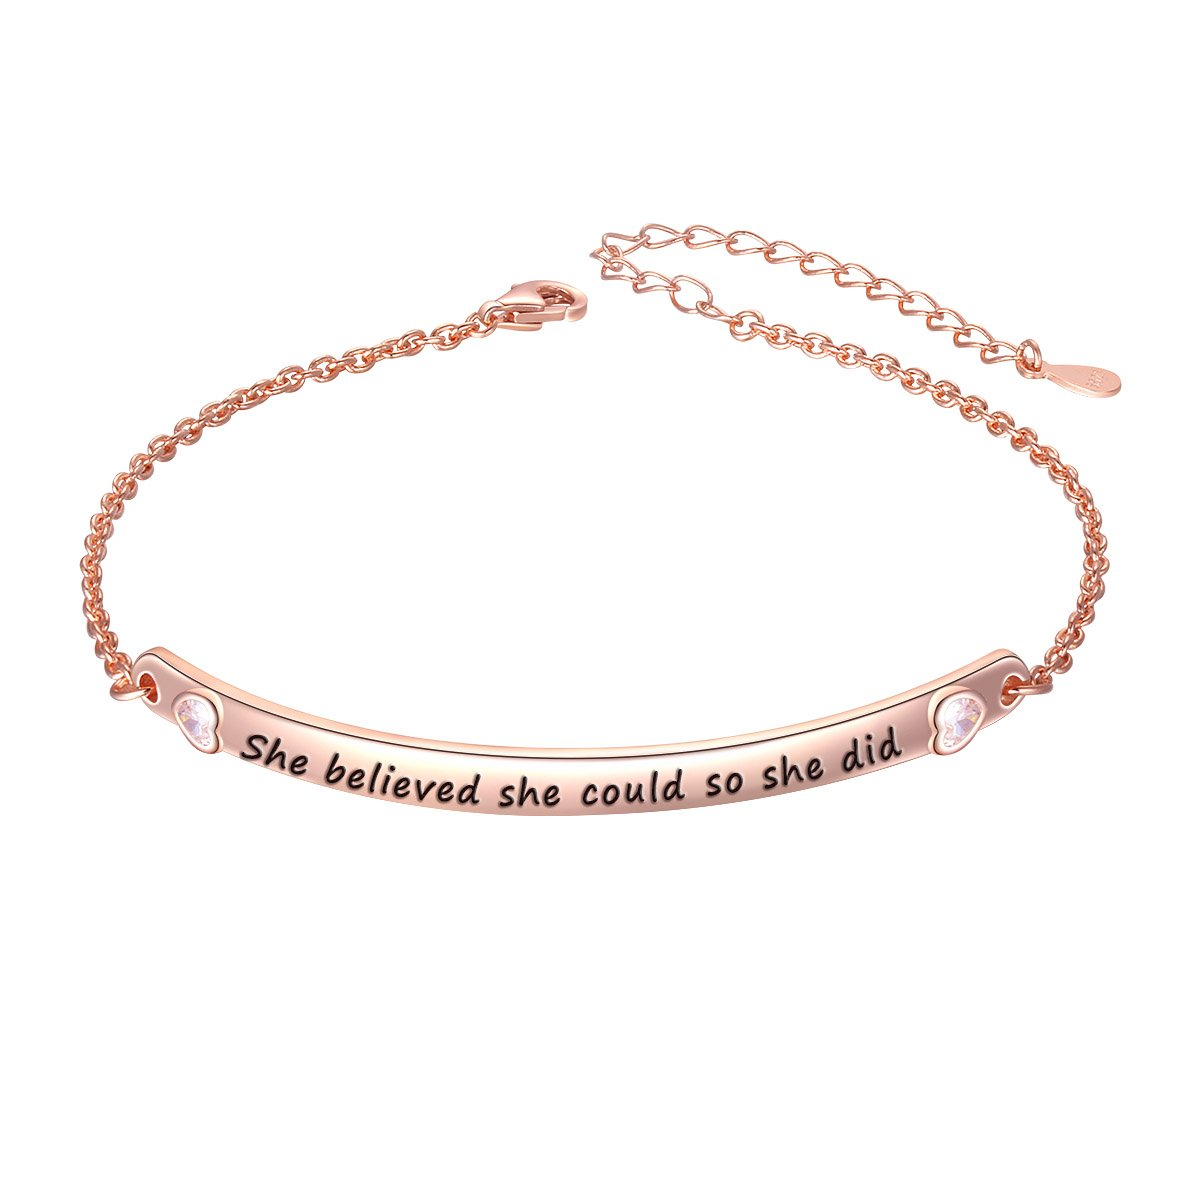 "SILVER MOUNTAIN Sterling Silver Engraved Inspirational Adjustable Bracelet ""She Believed She Could So She Did"" Gift for Her, Women, Friendship harmonyball jewelry"